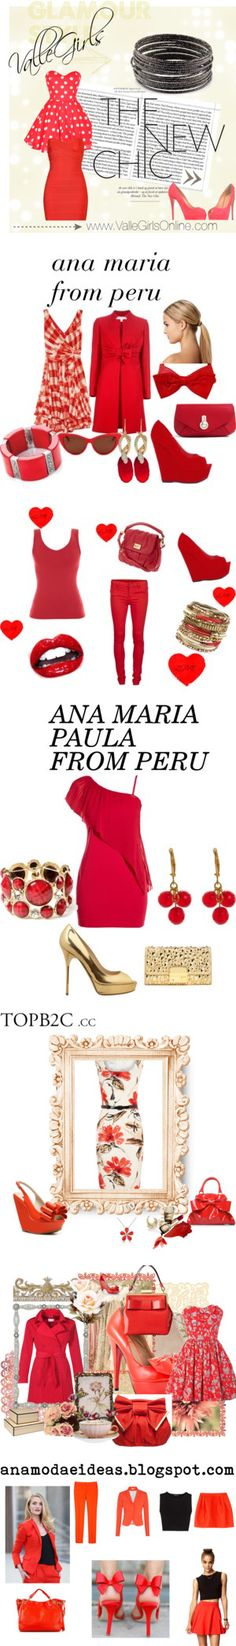 """""""THE BEST SETS IN RED OF ANA MARIA PAULA FROM PERU"""" by anamariapaula on Polyvore"""